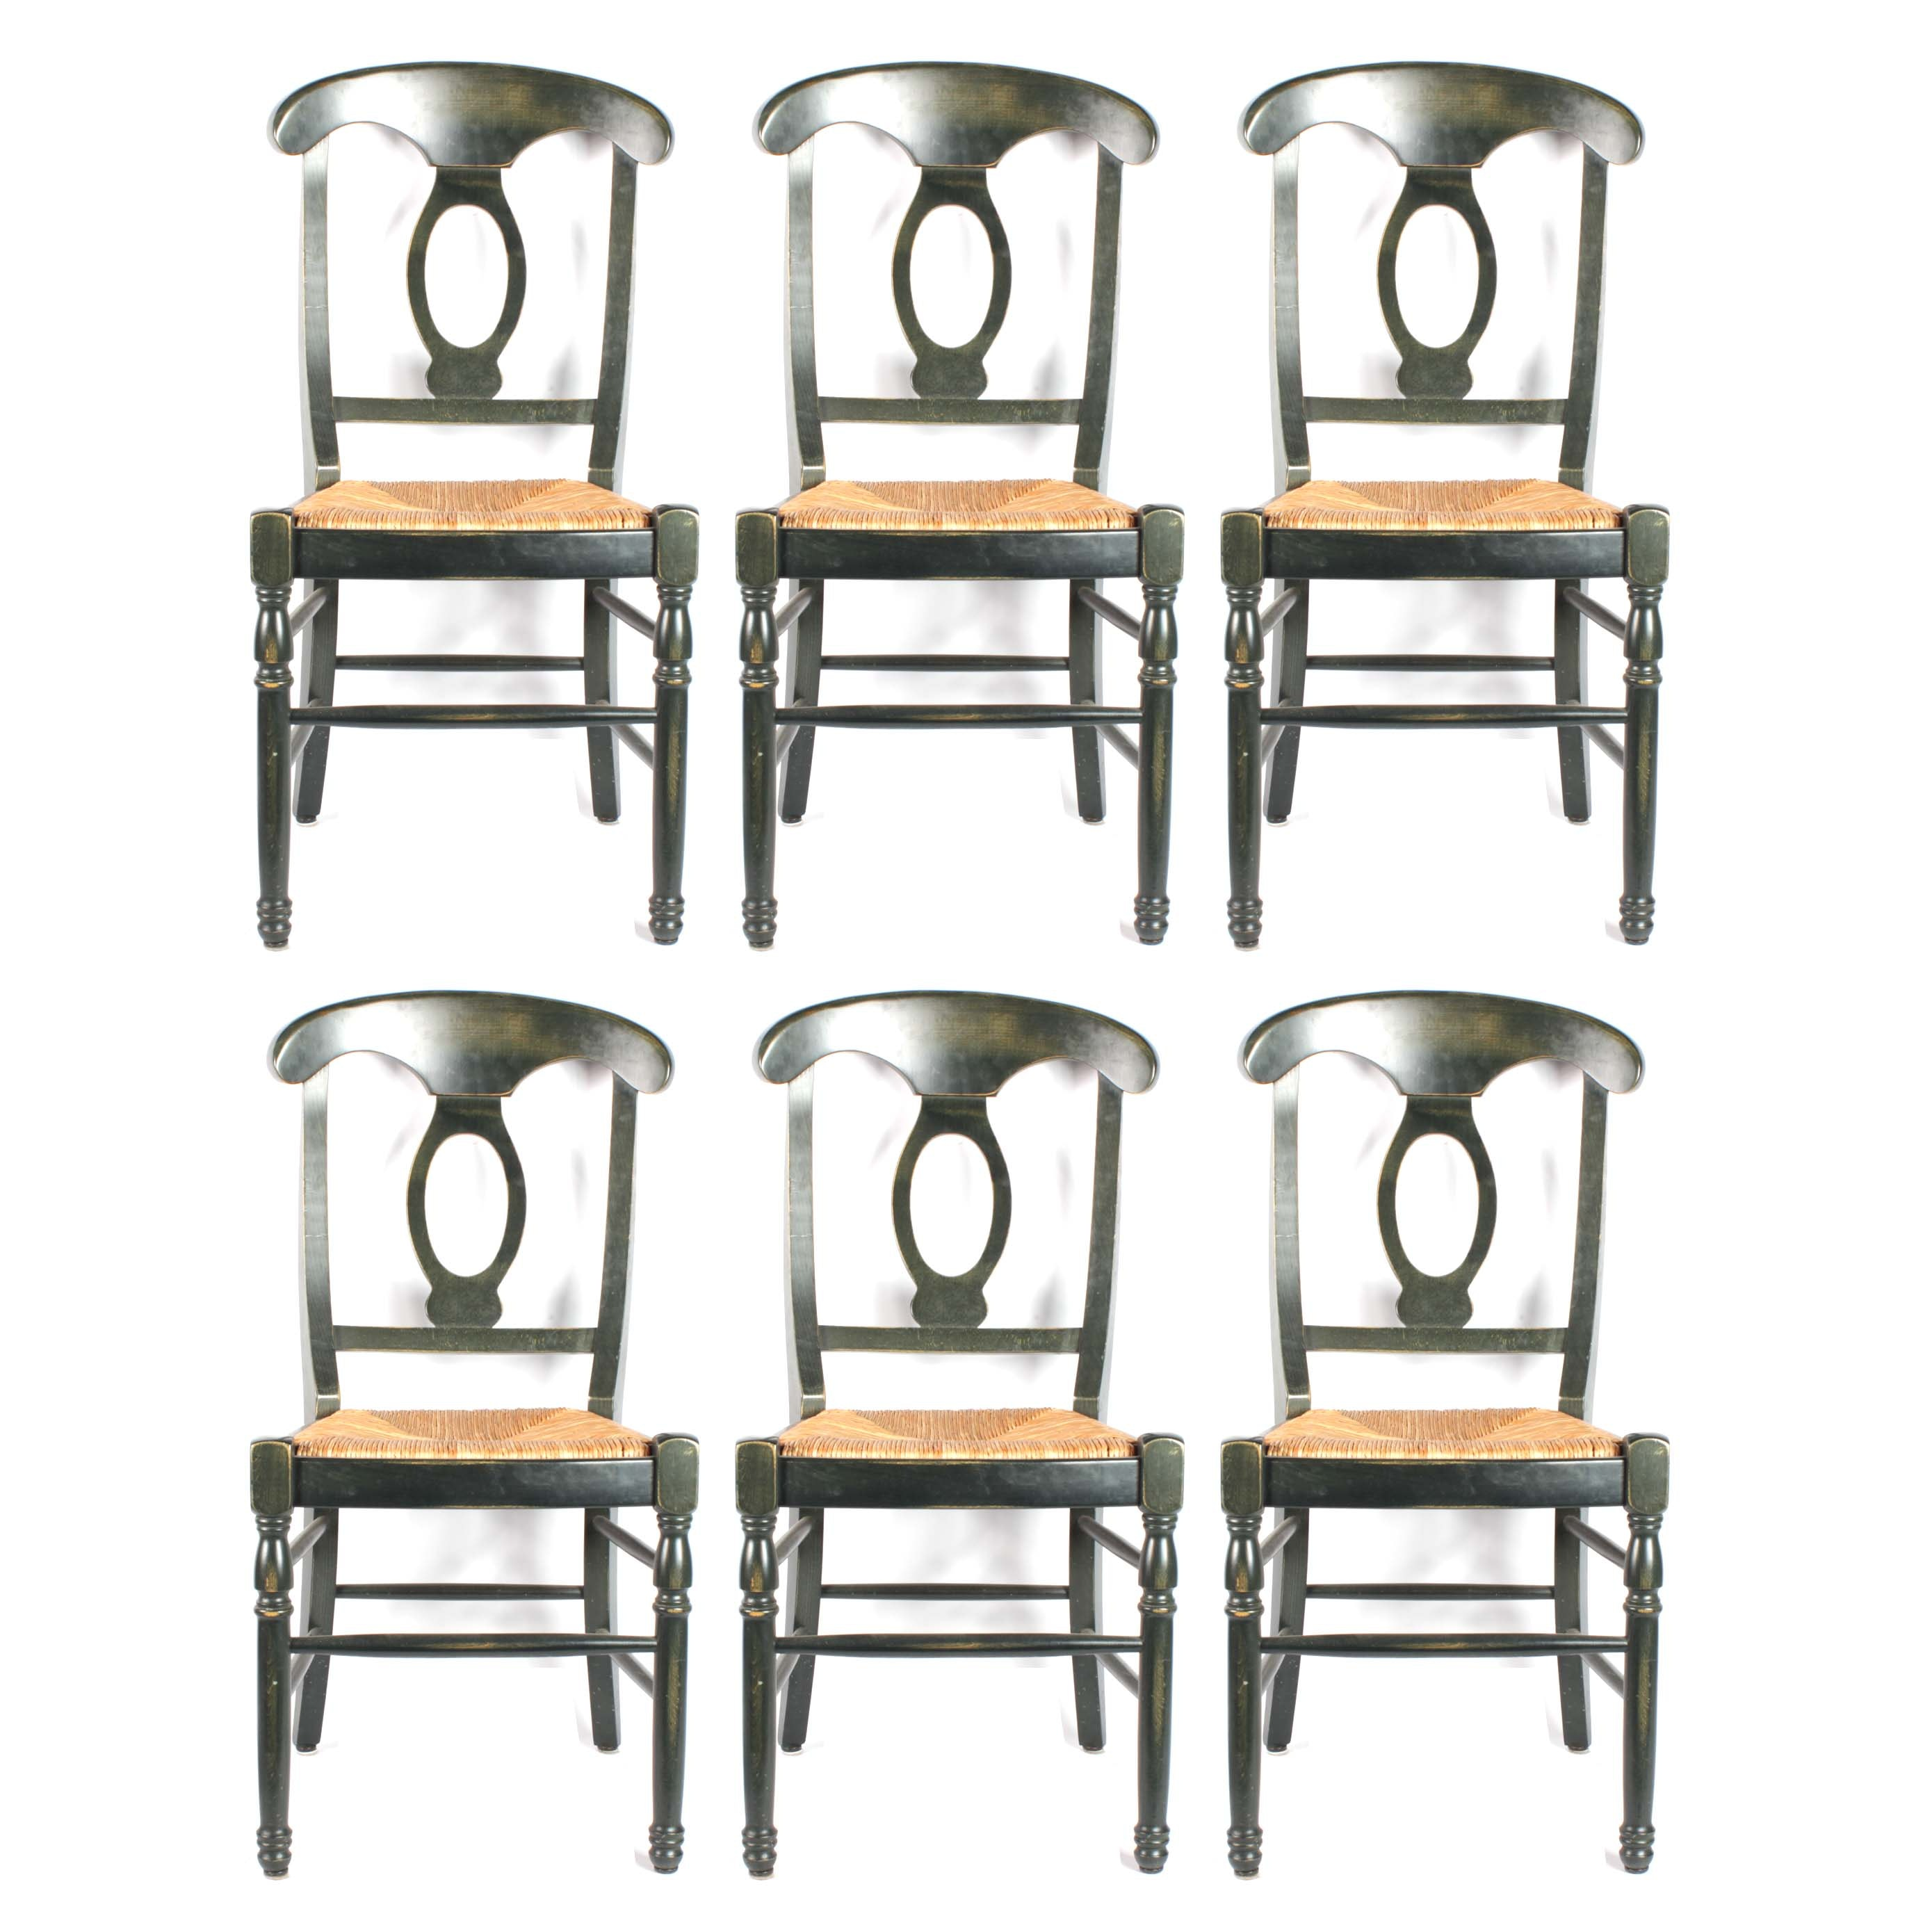 Contemporary Dining Chairs with Rush Seats, Late 20th Century